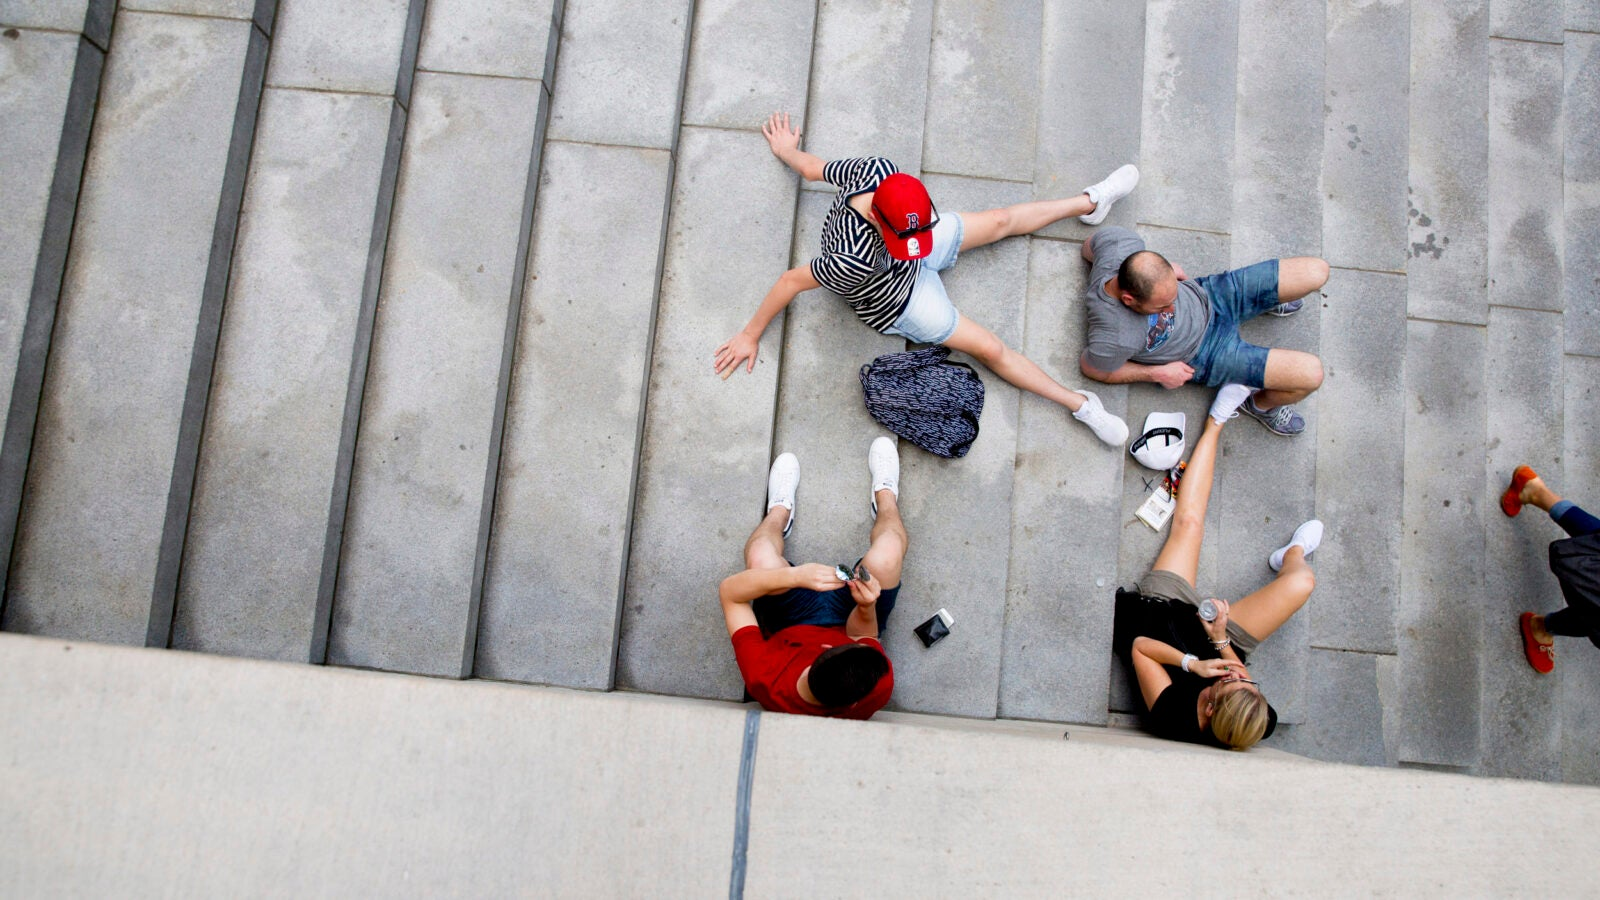 A red cap, T-shirt, and pair of shoes brighten the steps of Widener Library.